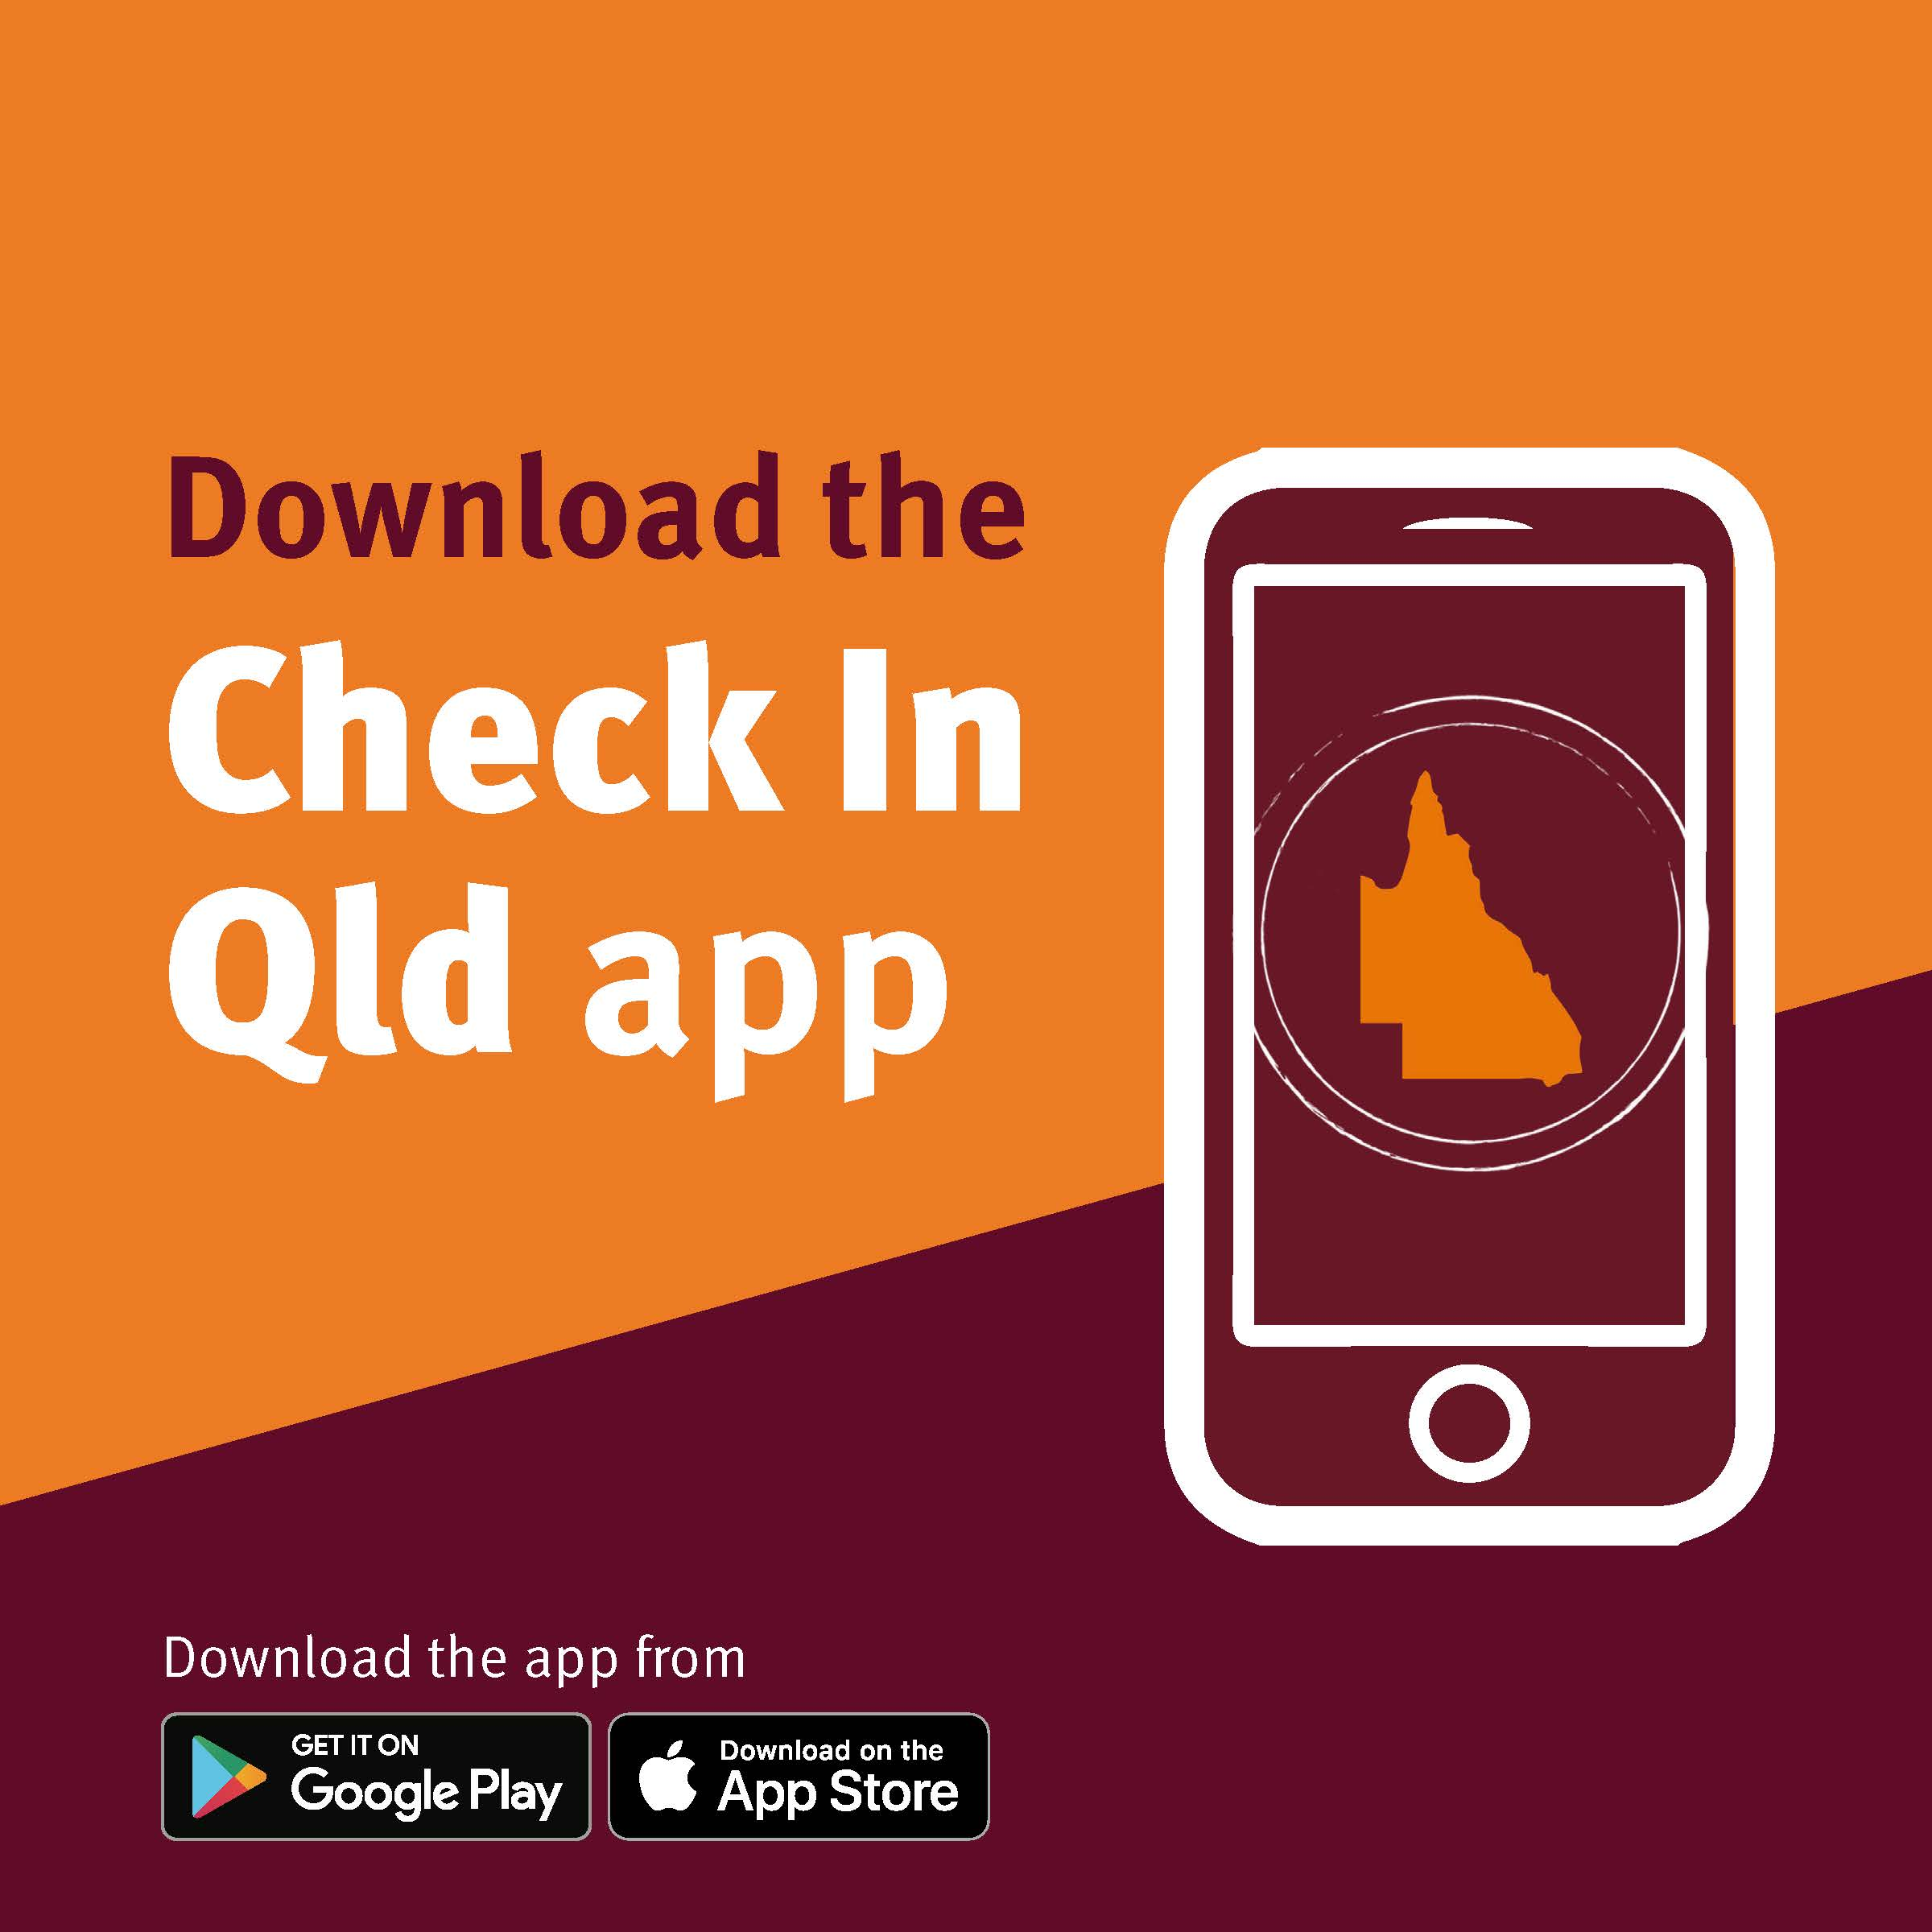 Check in Qld app